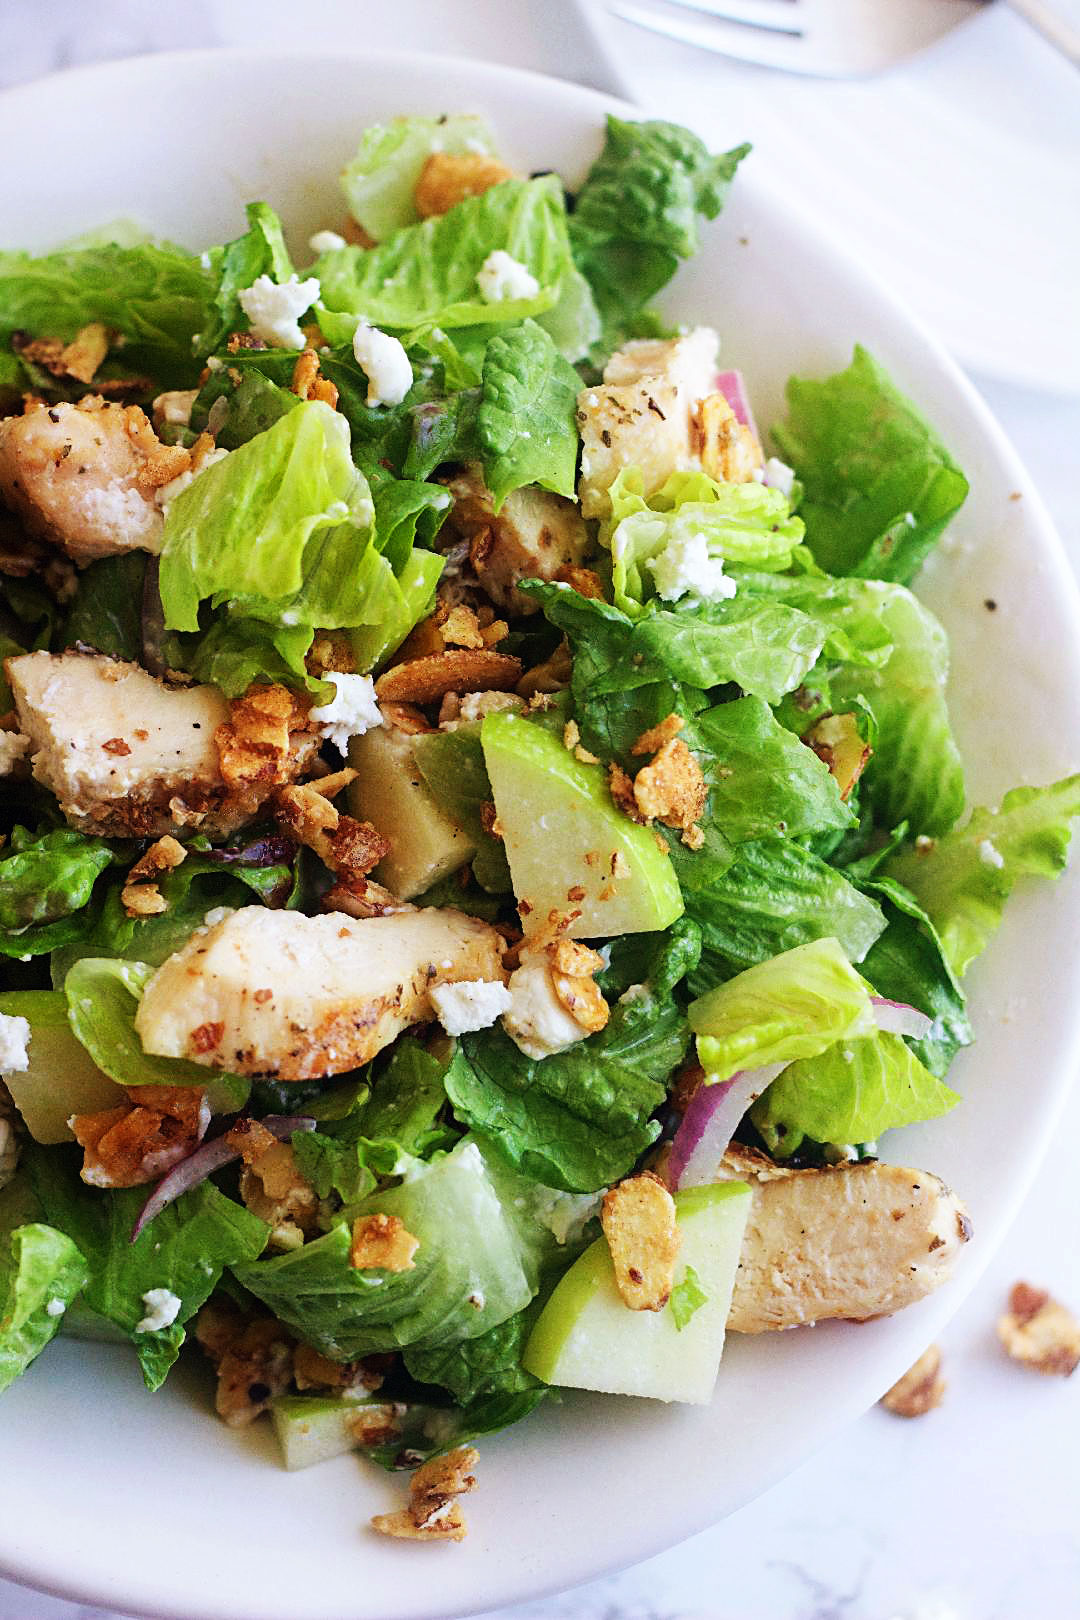 Chicken, Apple & Goat Cheese Salad is full of candied nuts, apples, goat cheese & chicken and tossed in a light champagne vinaigrette. Life-in-the-Lofthouse.com